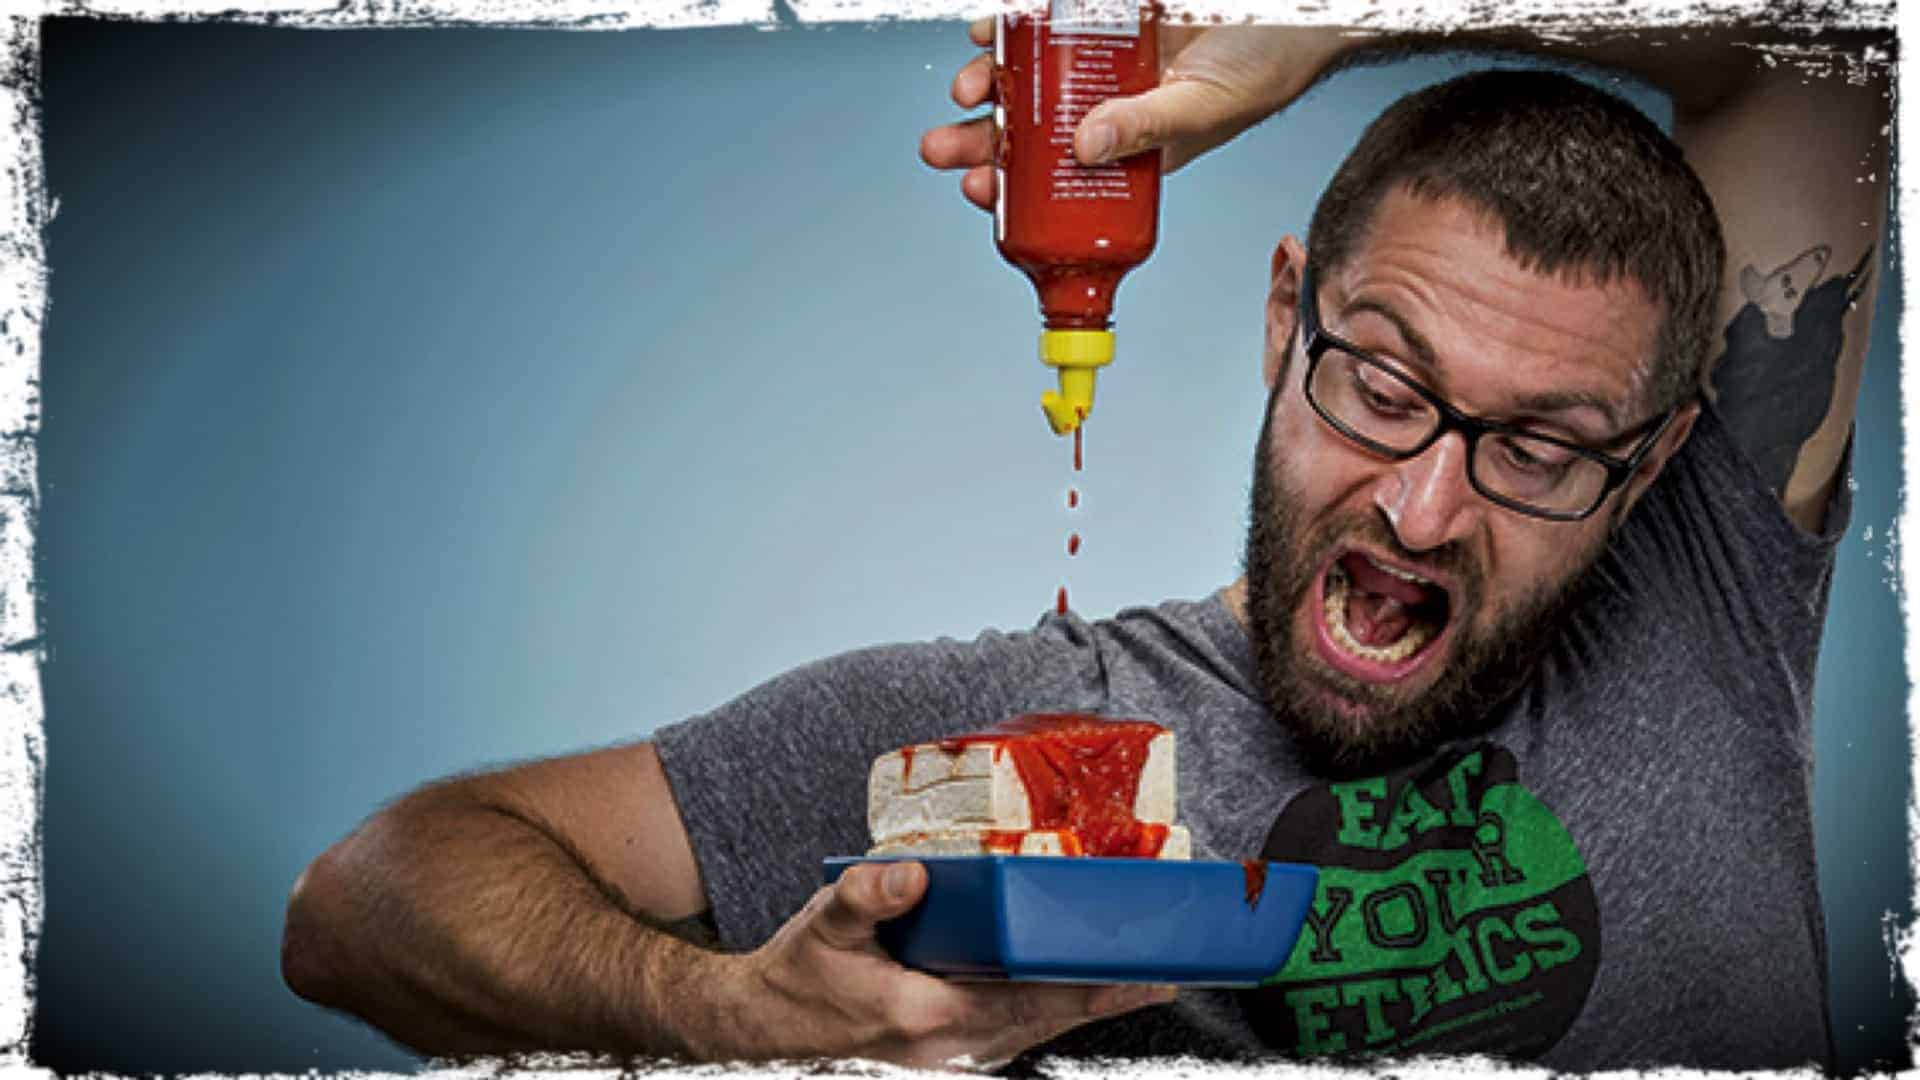 A person is shown squirting tomato sauce on to two slabs of tofu, piled one on top of the within a small food tray.